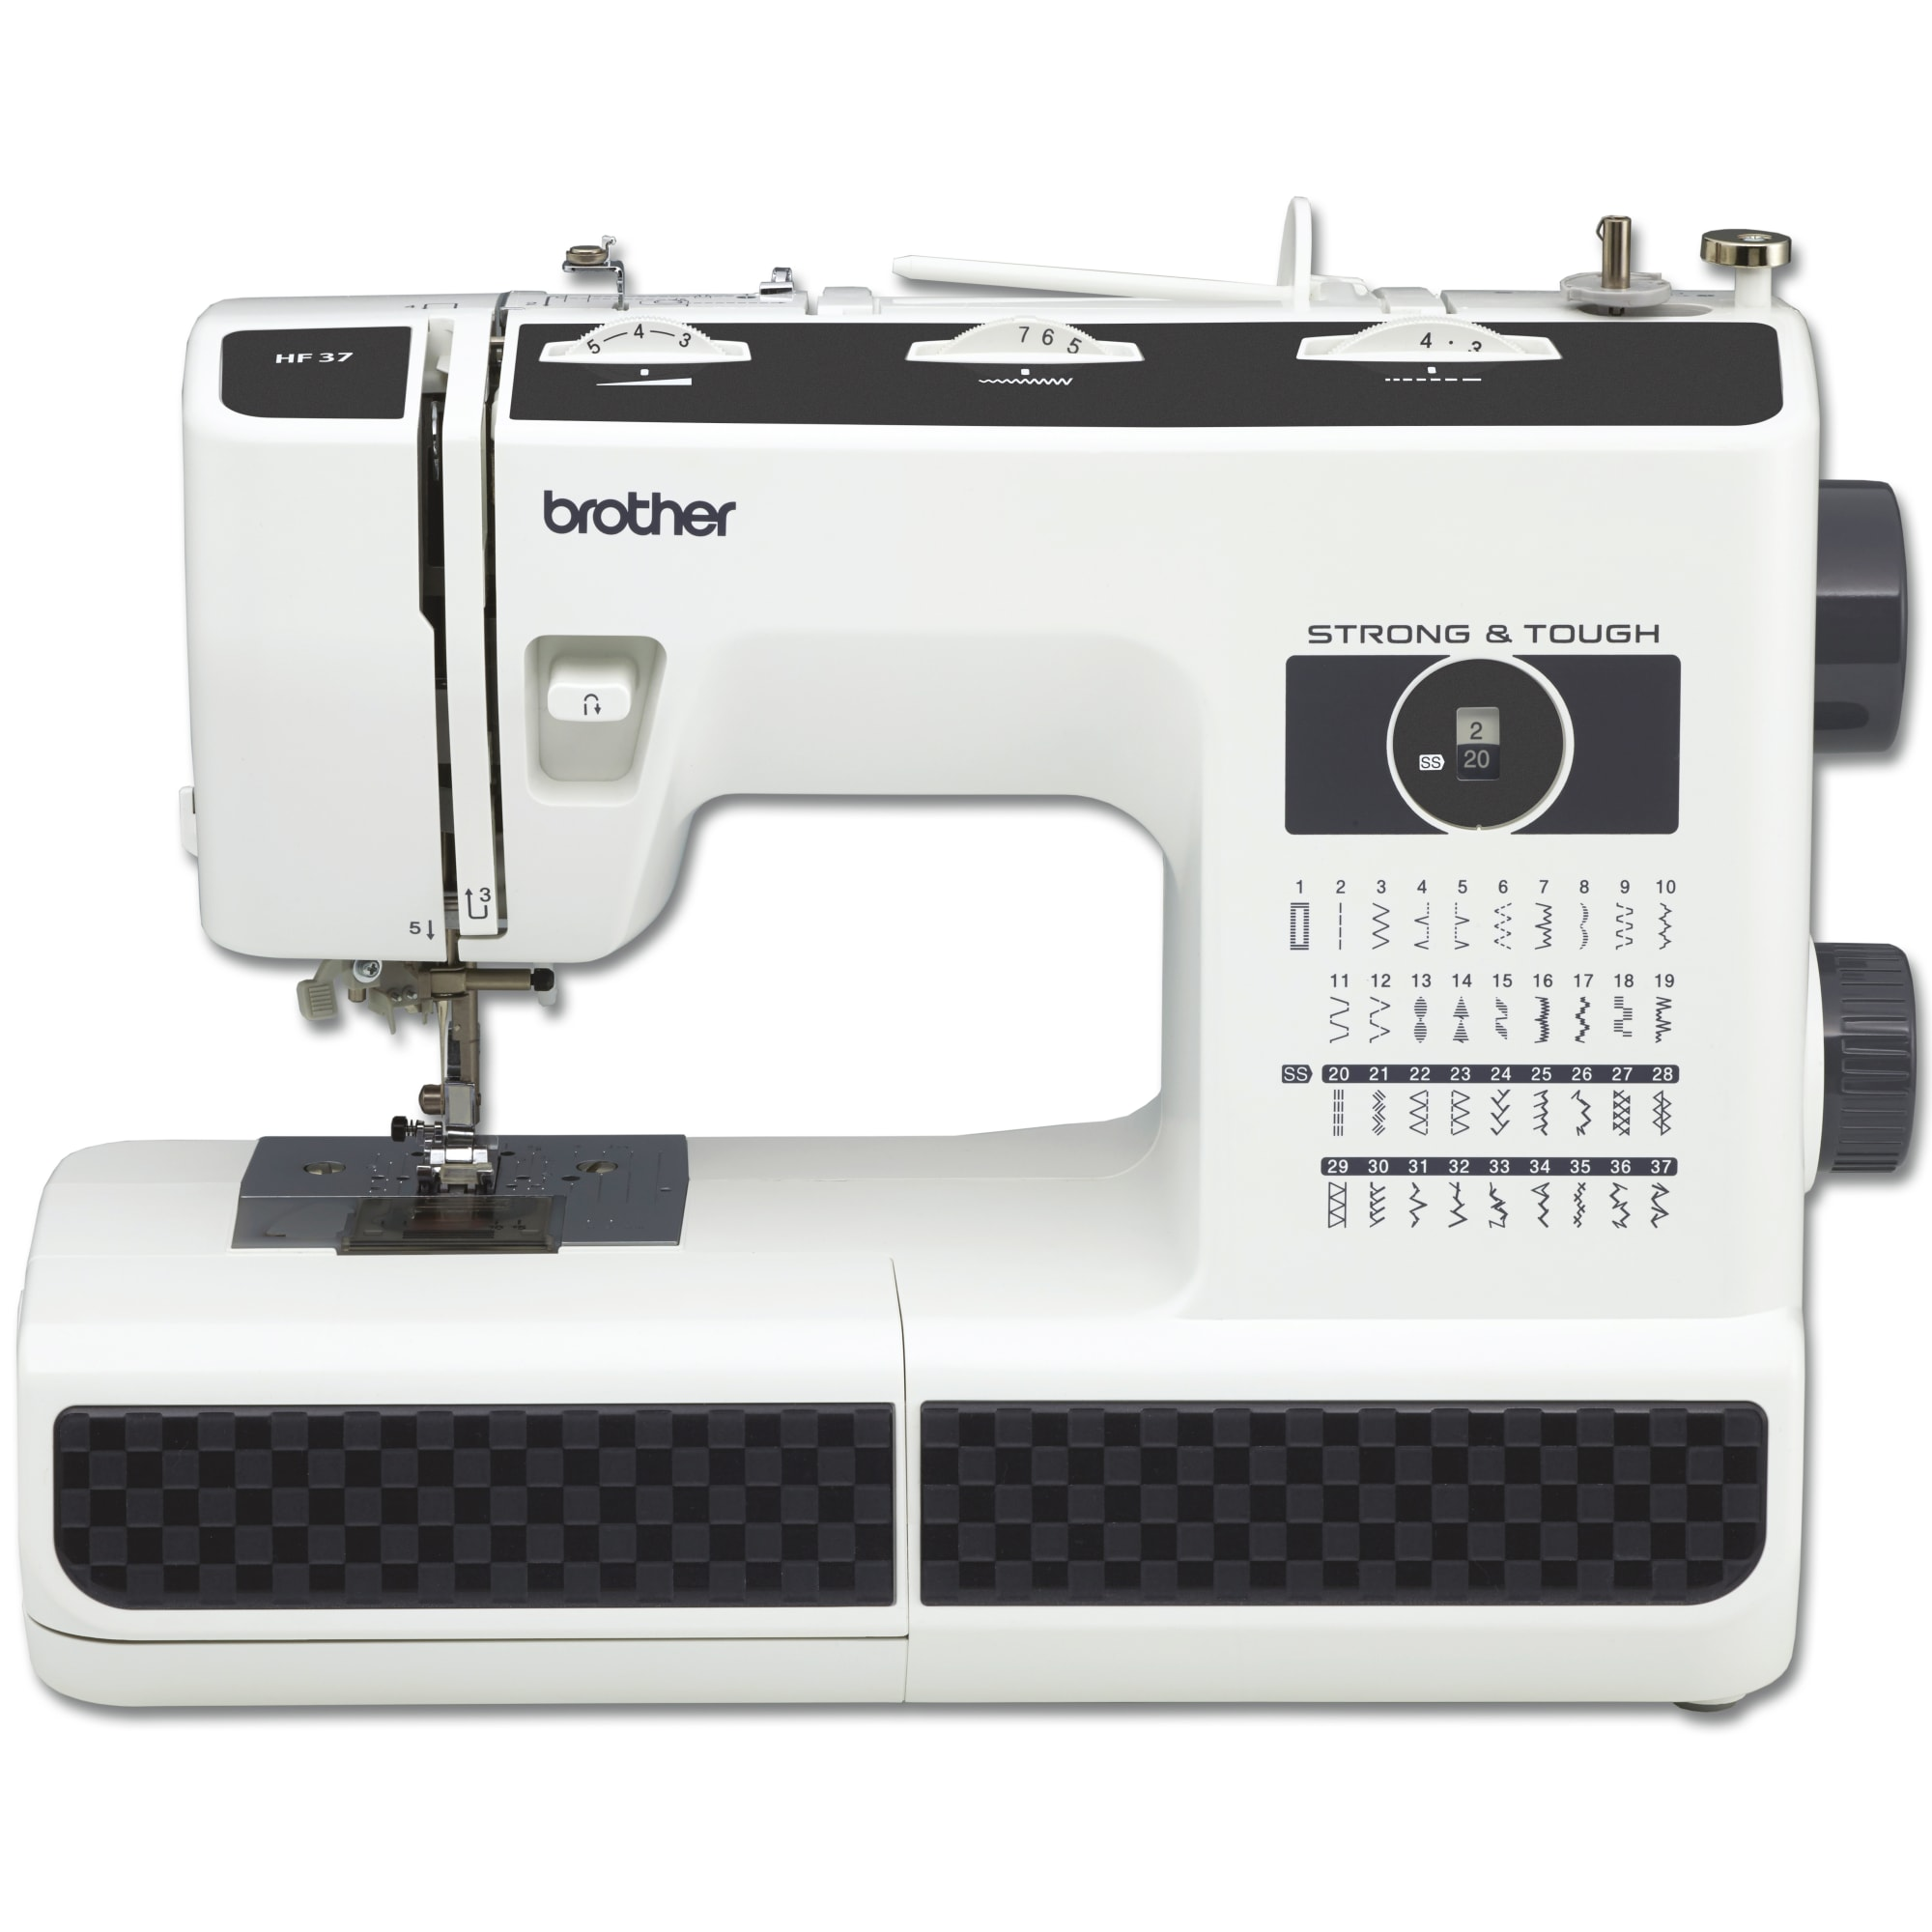 Brother - Sewing Machine - HF37